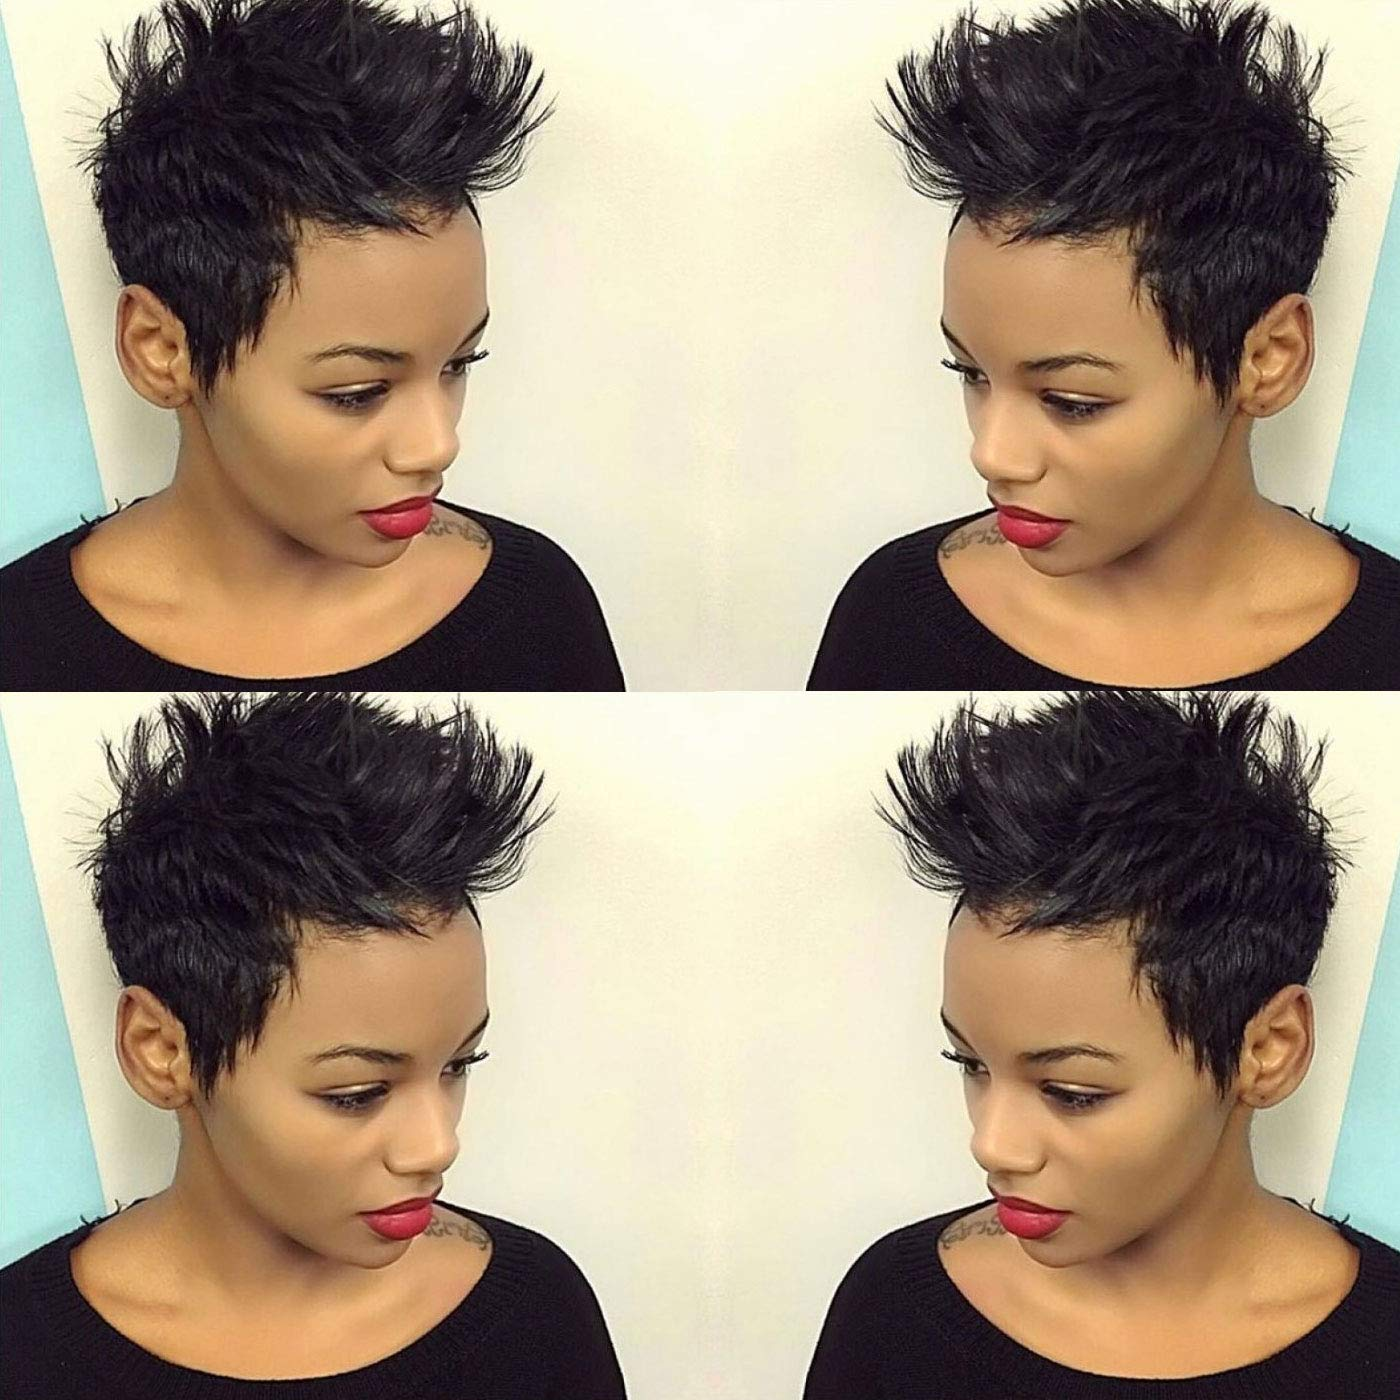 Buy BeiSD Short Black Pixie Cut Wigs For Women Natural Synthetic ...